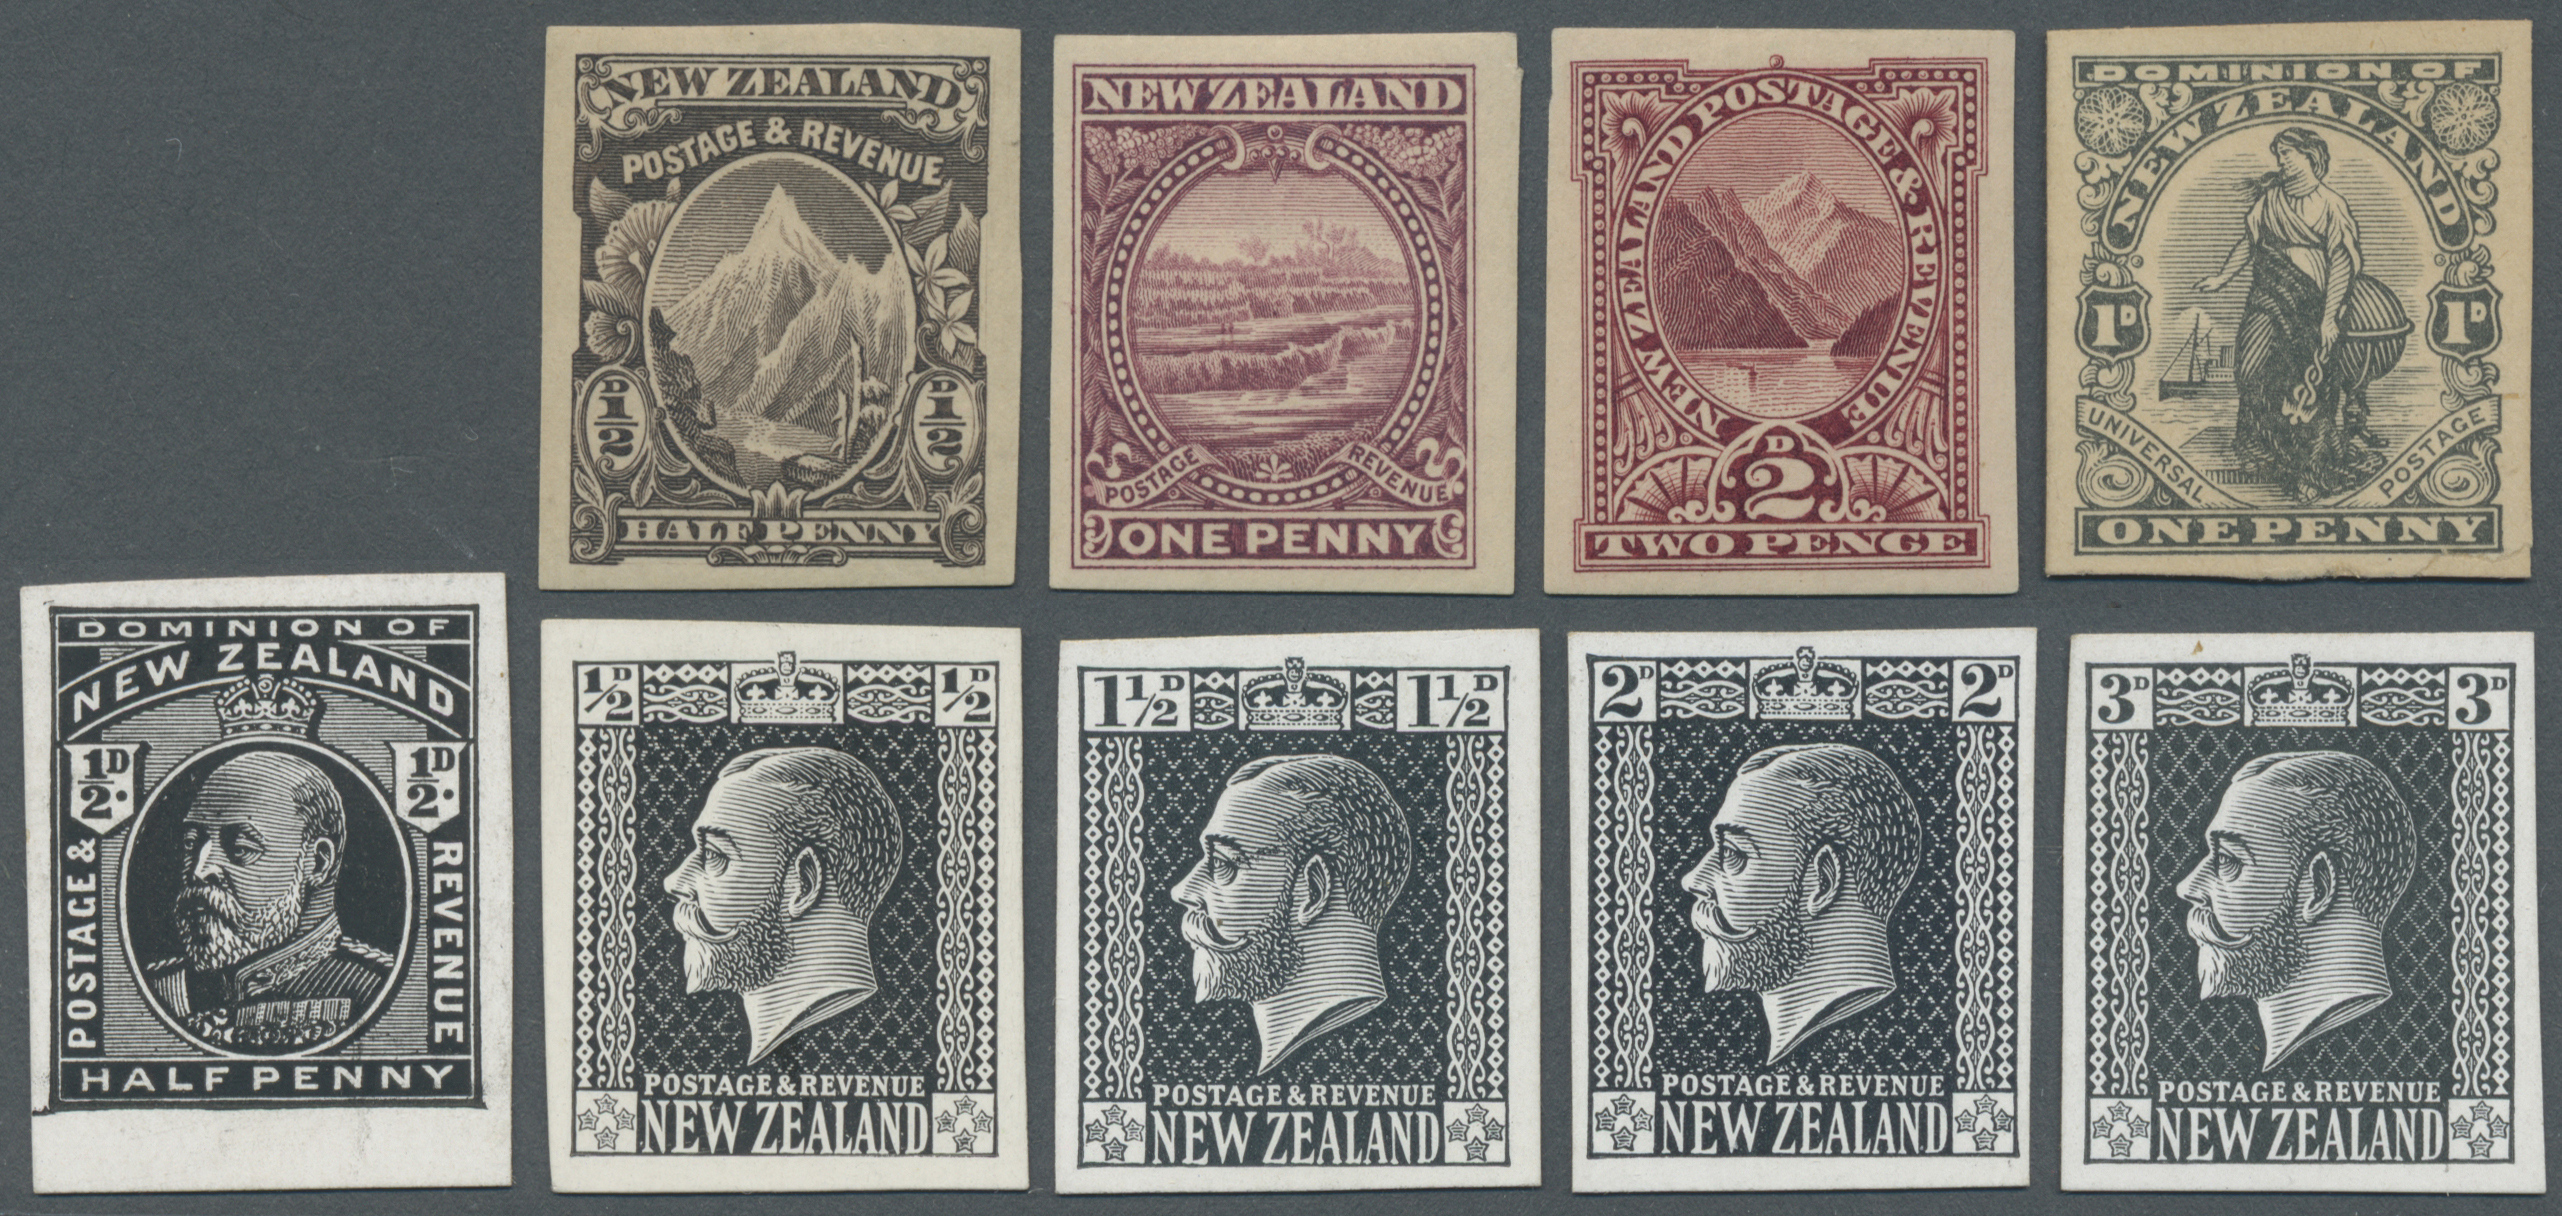 Lot 14171 - neuseeland  -  Auktionshaus Christoph Gärtner GmbH & Co. KG Single lots Philately Overseas & Europe. Auction #39 Day 4